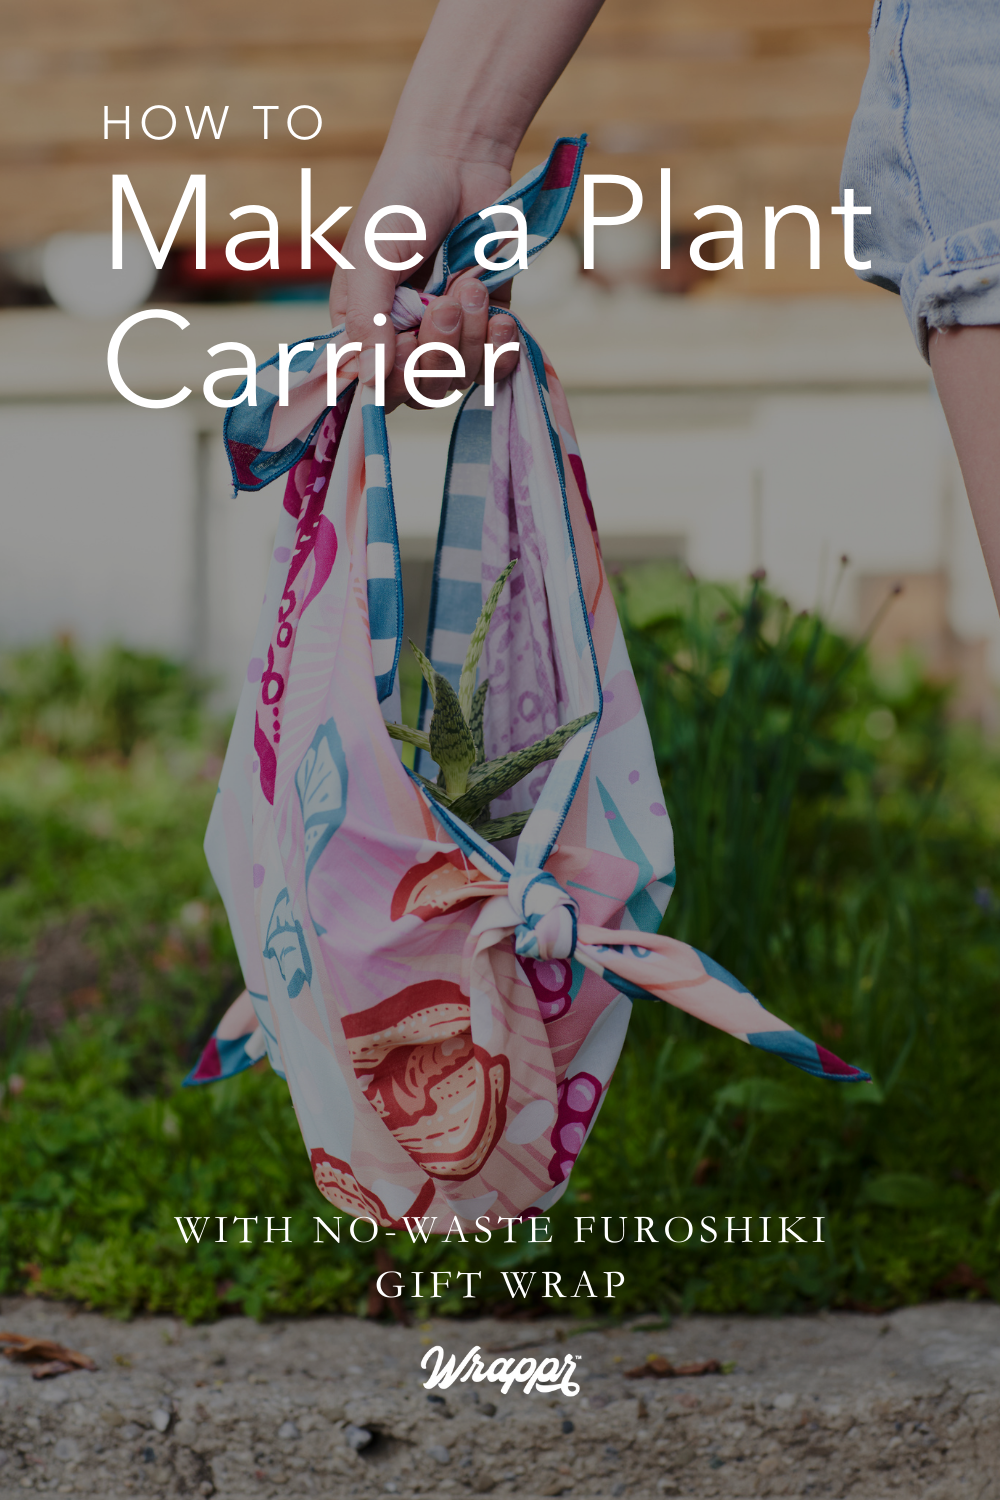 Wrappr How to Make a Plant Carrier with Furoshiki